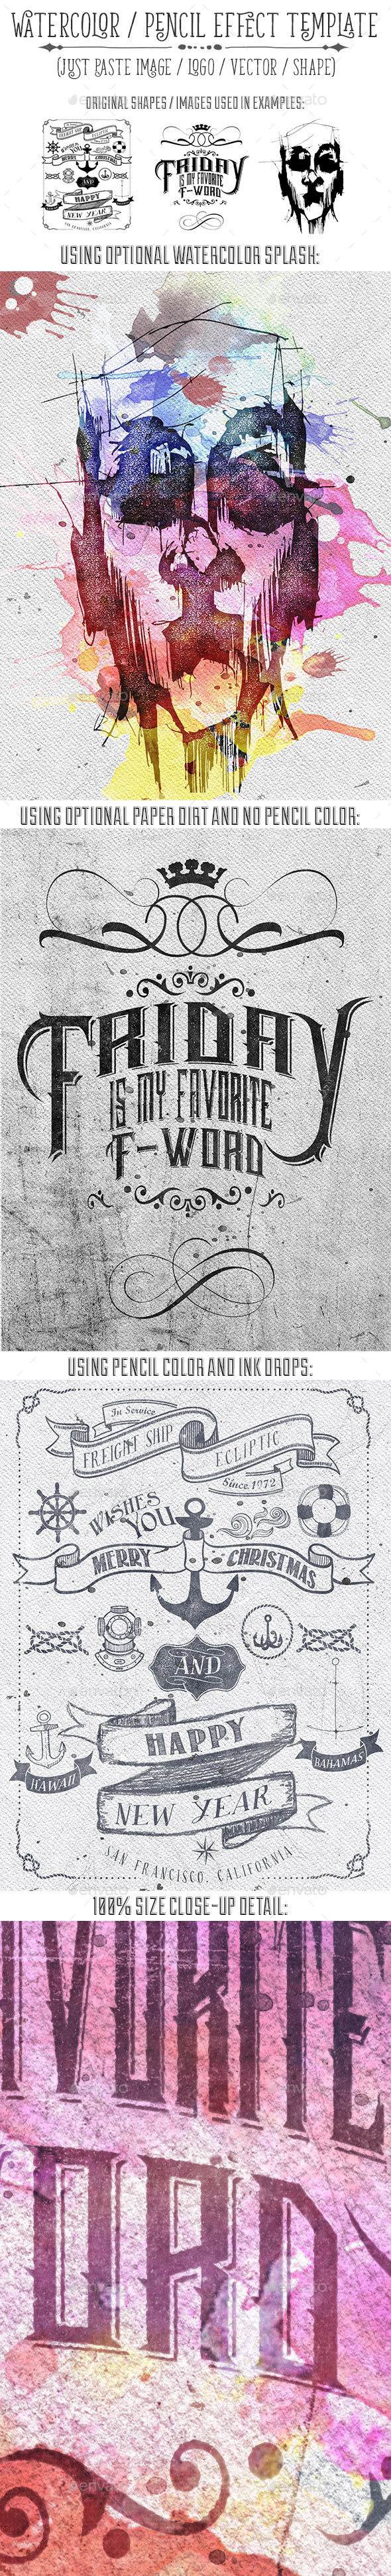 Watercolor or Pencil Press Style Text, Logo, Image Treatment - Hero Images Graphics